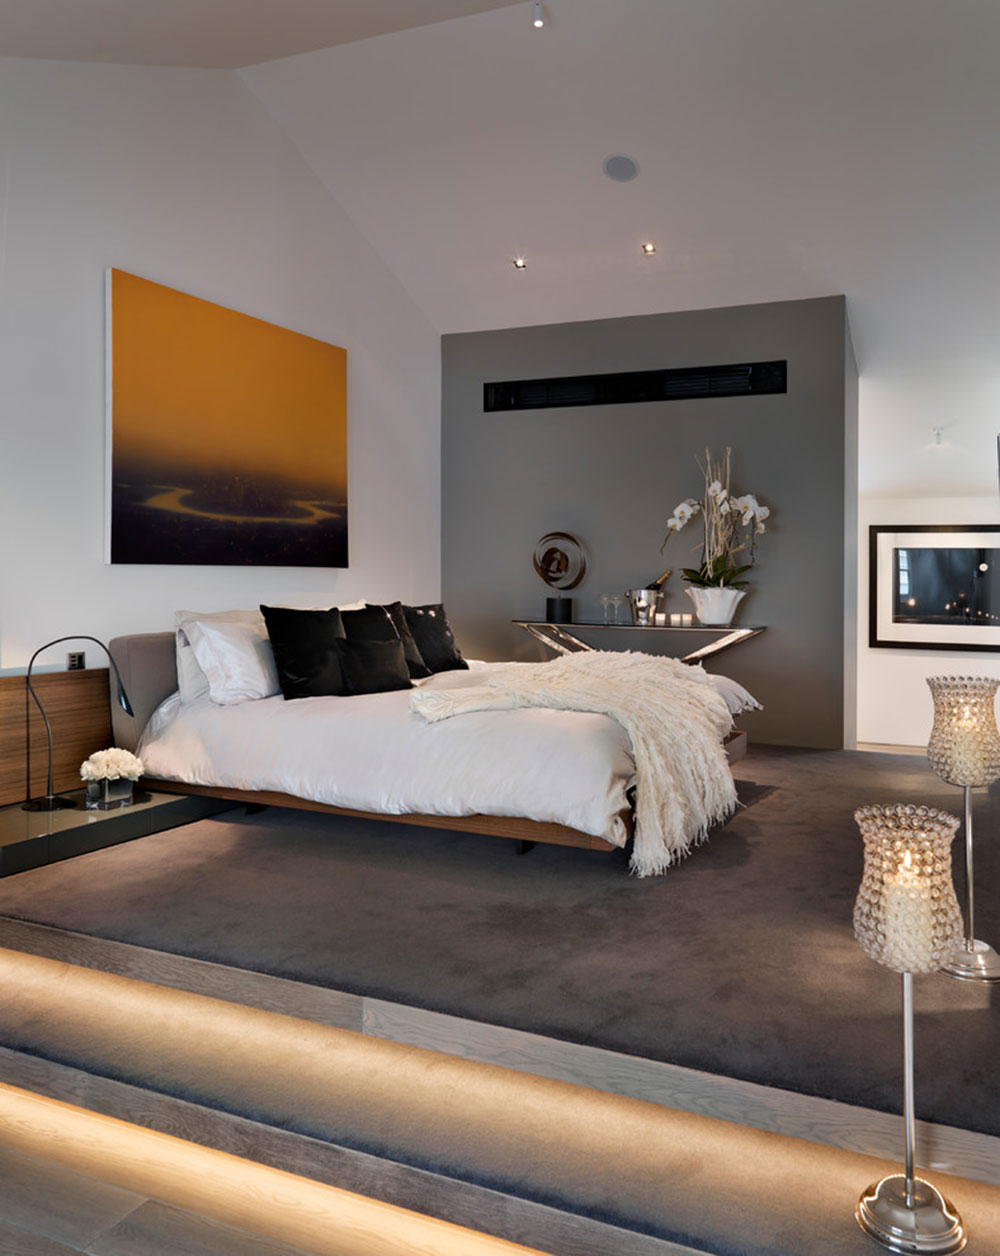 Newlyweds-Bedroom-Design-Ideas-to-help-the-couple5 newly-wed-bedroom-design-ideas are intended to help the couple